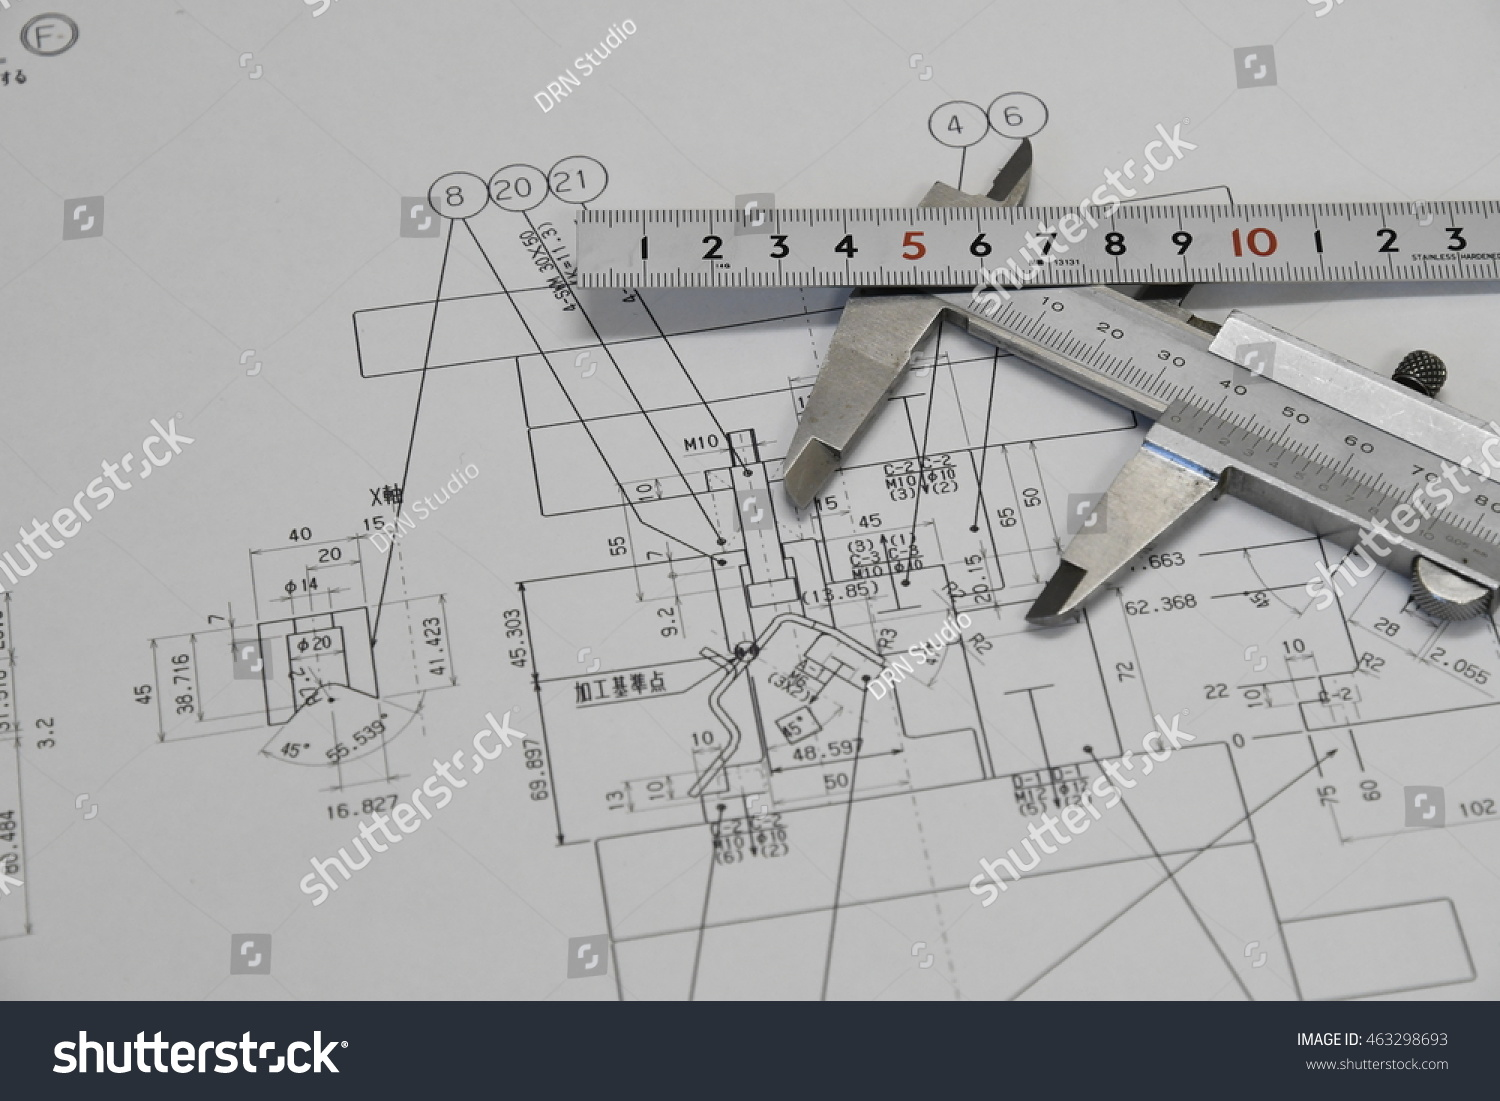 hight resolution of vernier caliper ruler and technical drawing